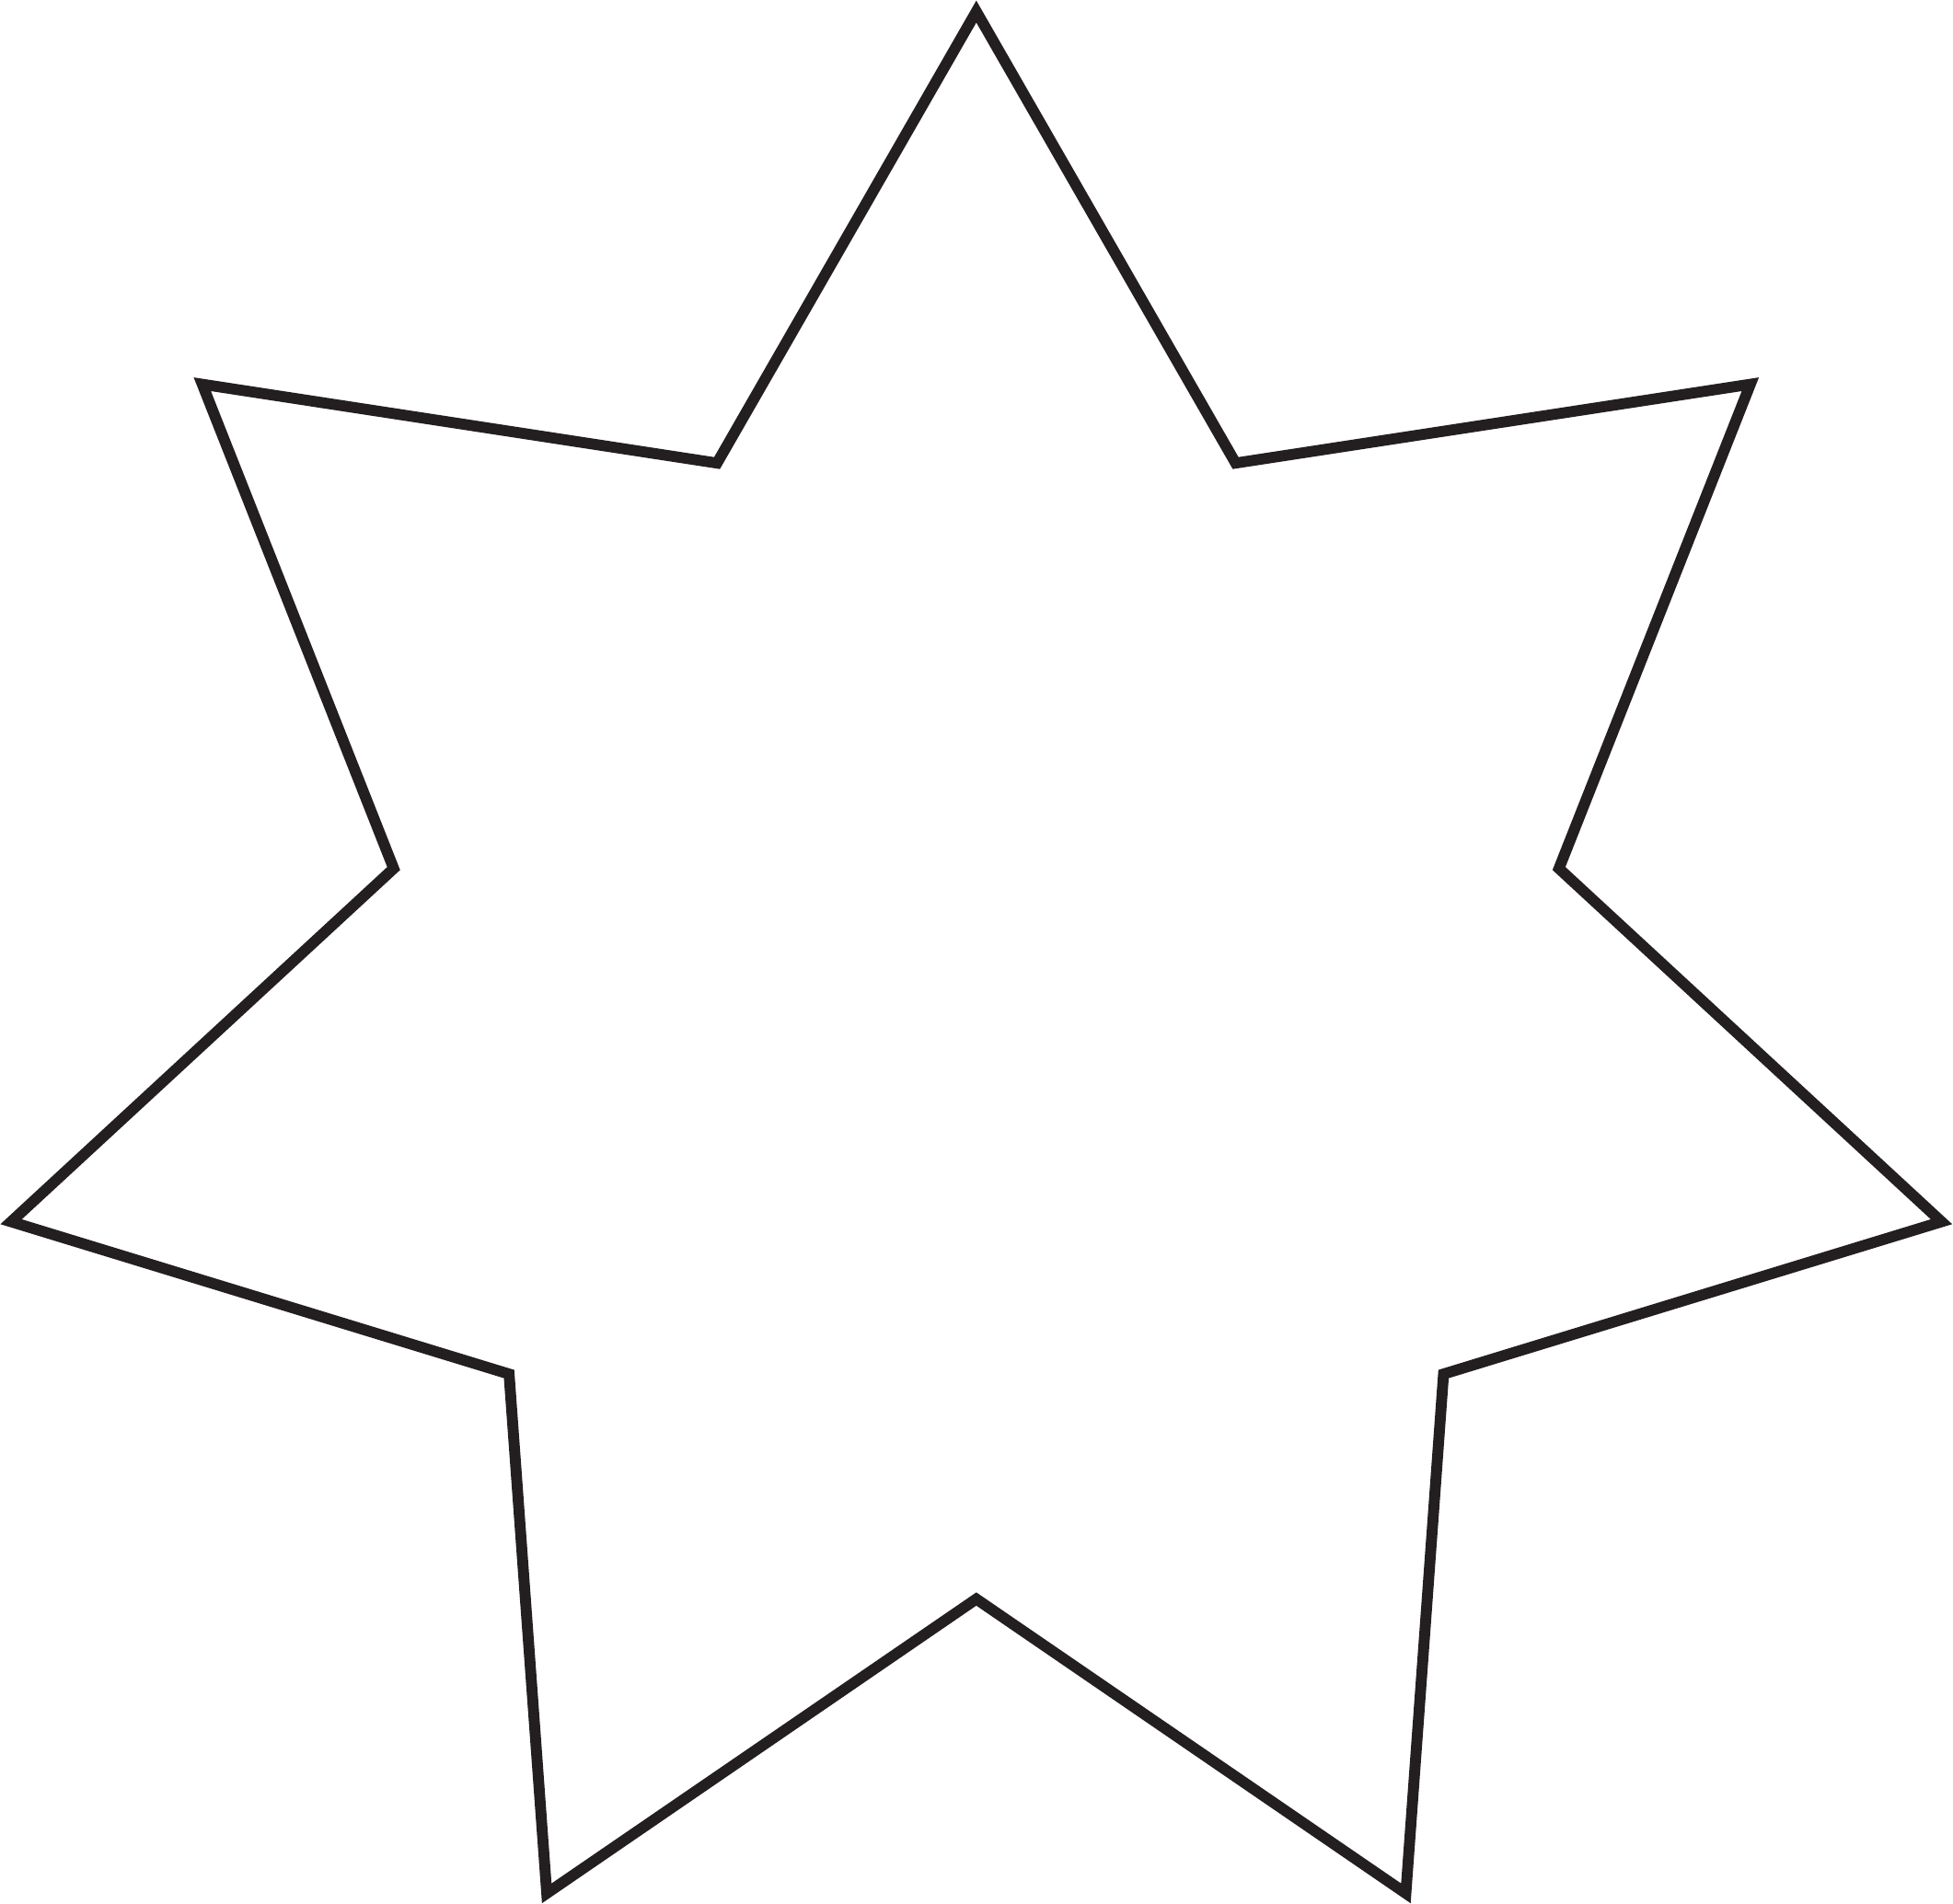 Seven-Pointed Star Template Free Download